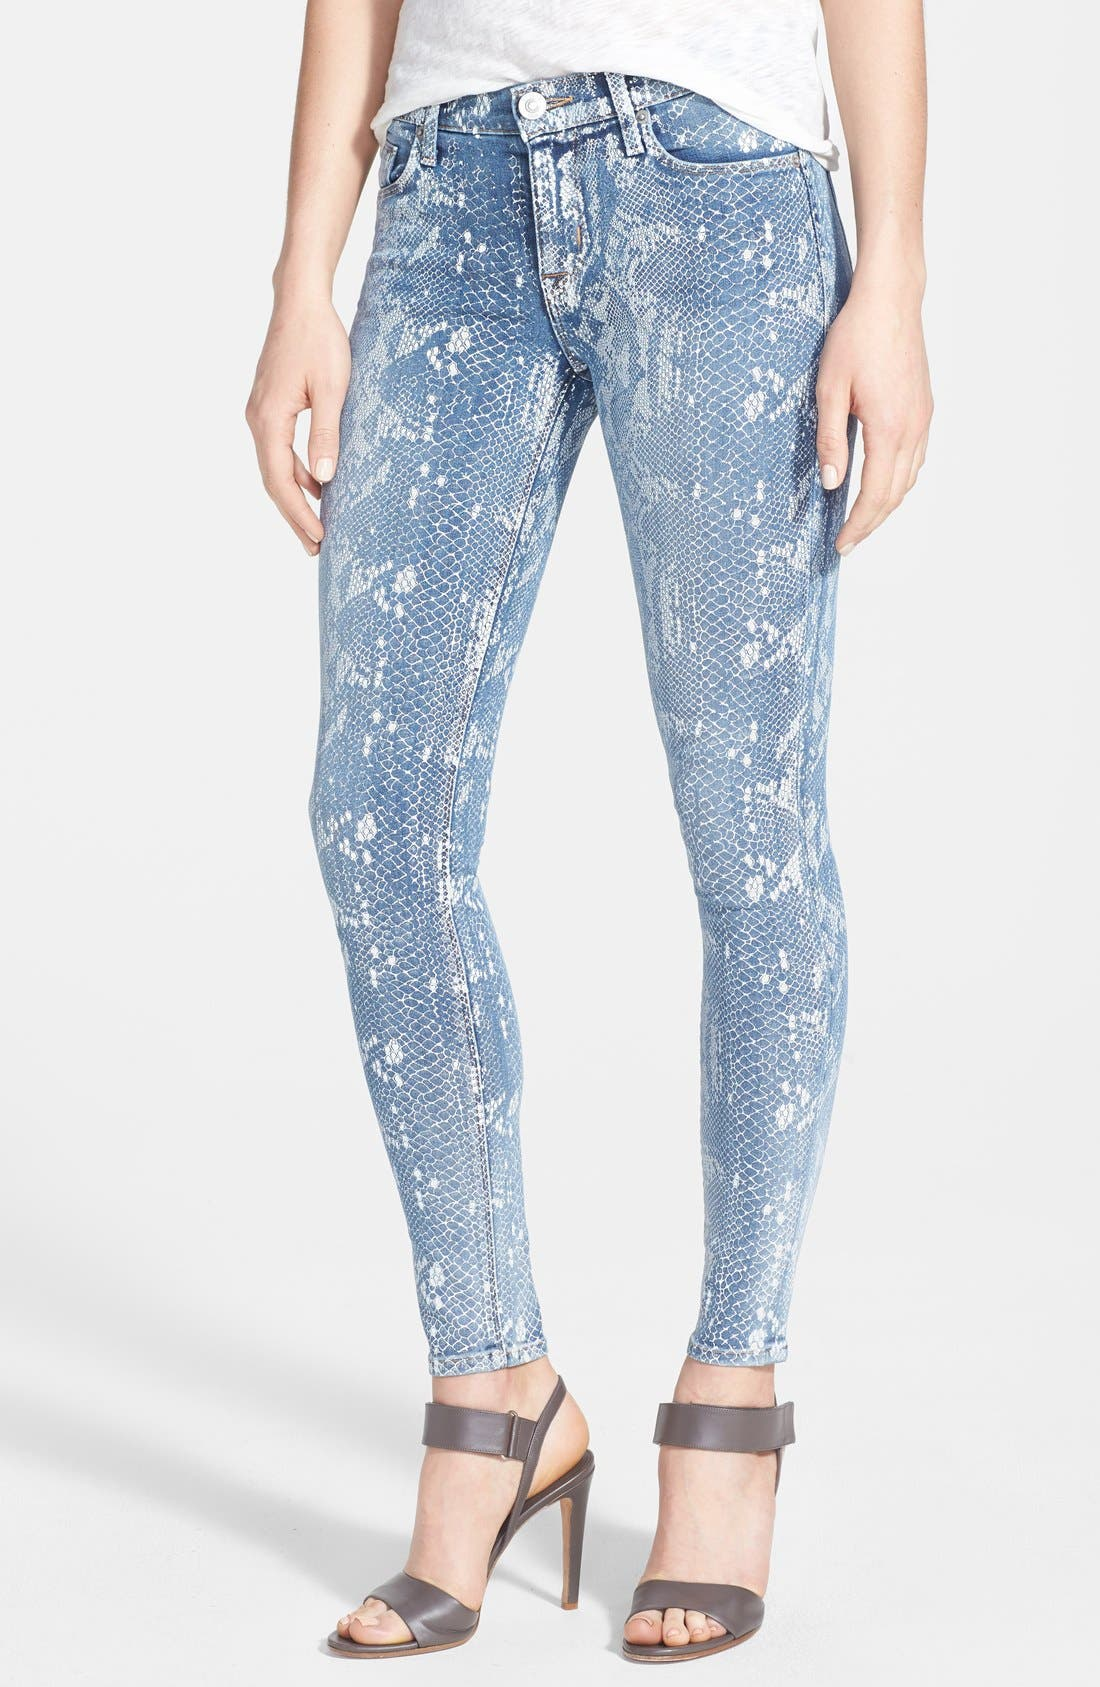 Main Image - Hudson Jeans 'Nico' Print Skinny Stretch Jeans (Copperhead)